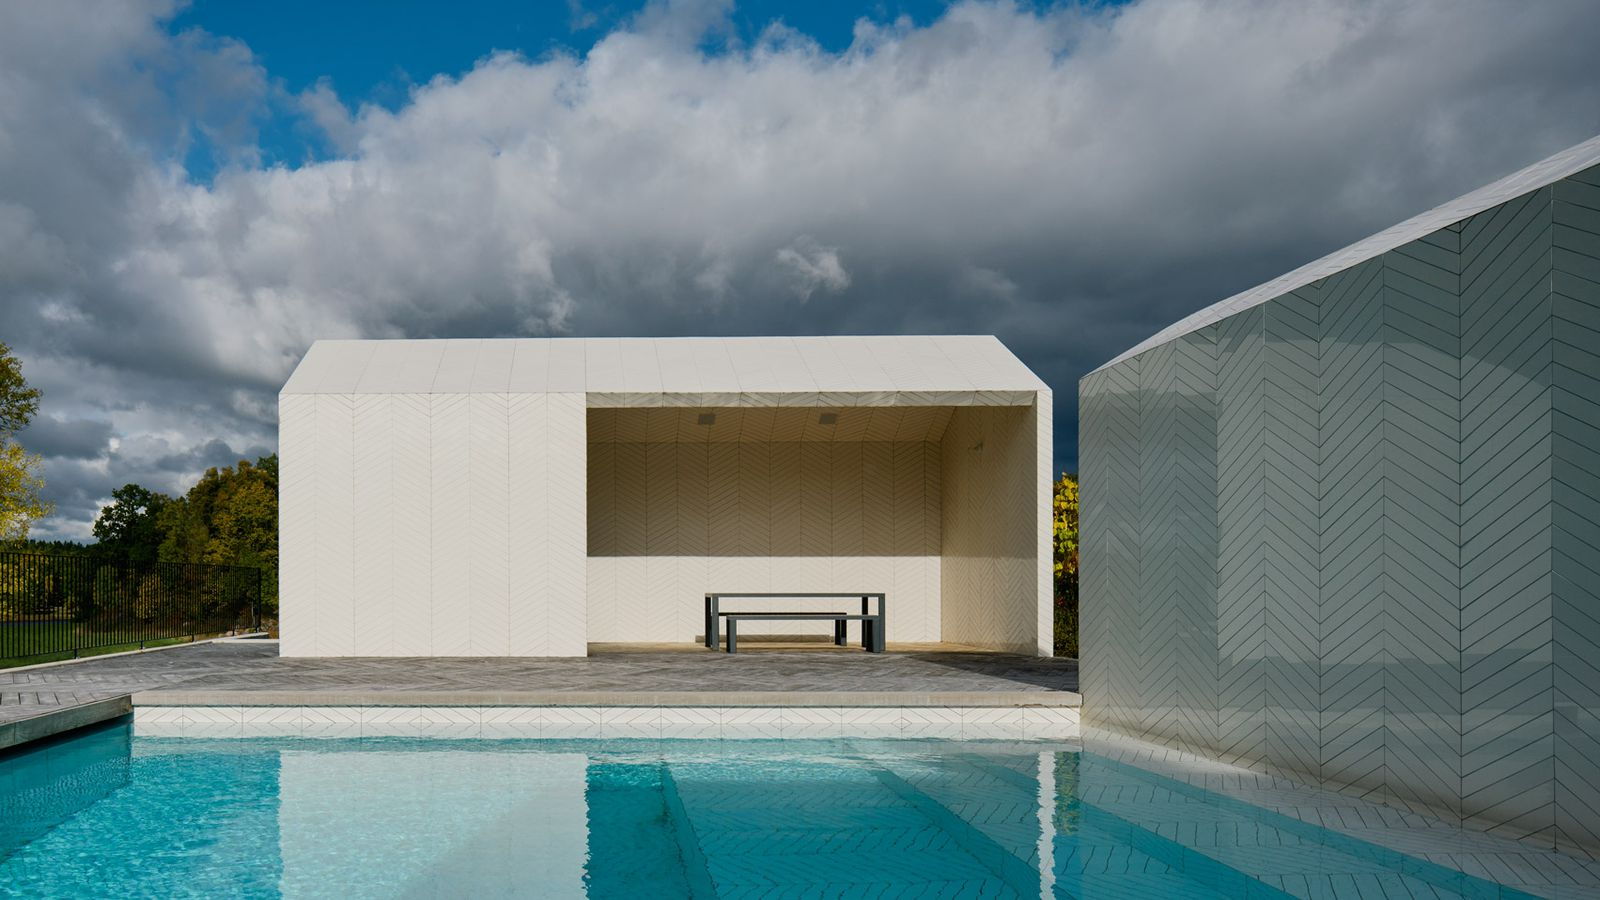 Spa In Swimming Pool: Striking Swimming Pool Complex Is Clad Entirely In A White